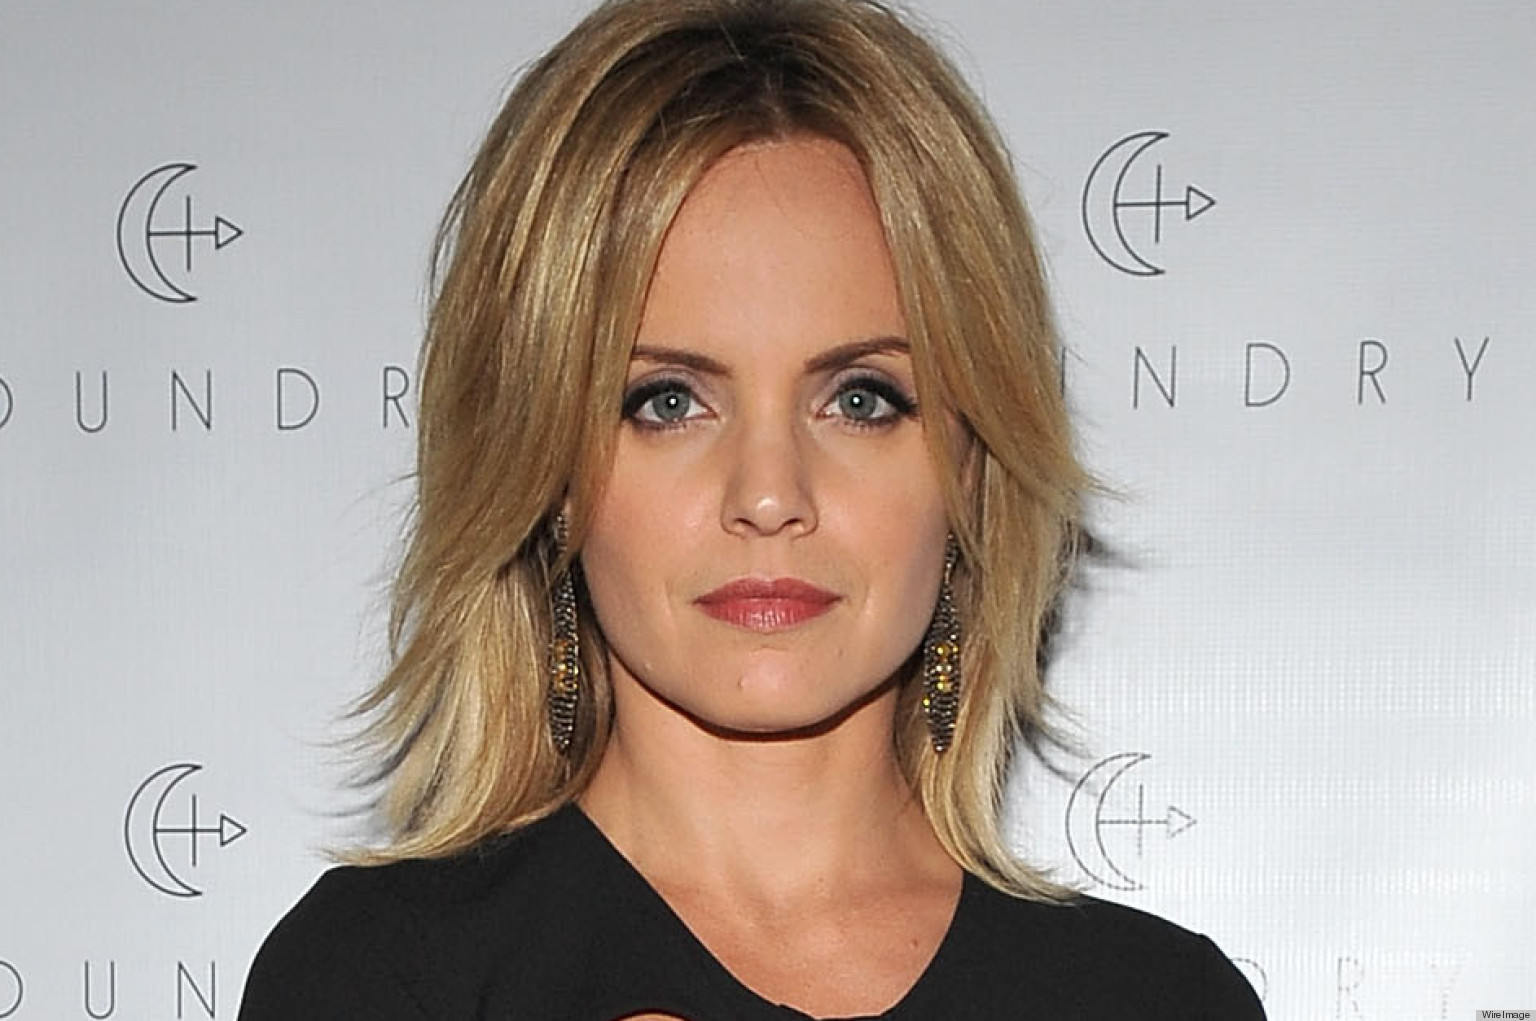 Mena Suvari Tries A Risque Cutout Dress: Yay Or Nay? (PHOTO, POLL ...: http://www.huffingtonpost.com/2012/10/20/mena-suvari-dress-photos-pictures-style-hair_n_1992627.html